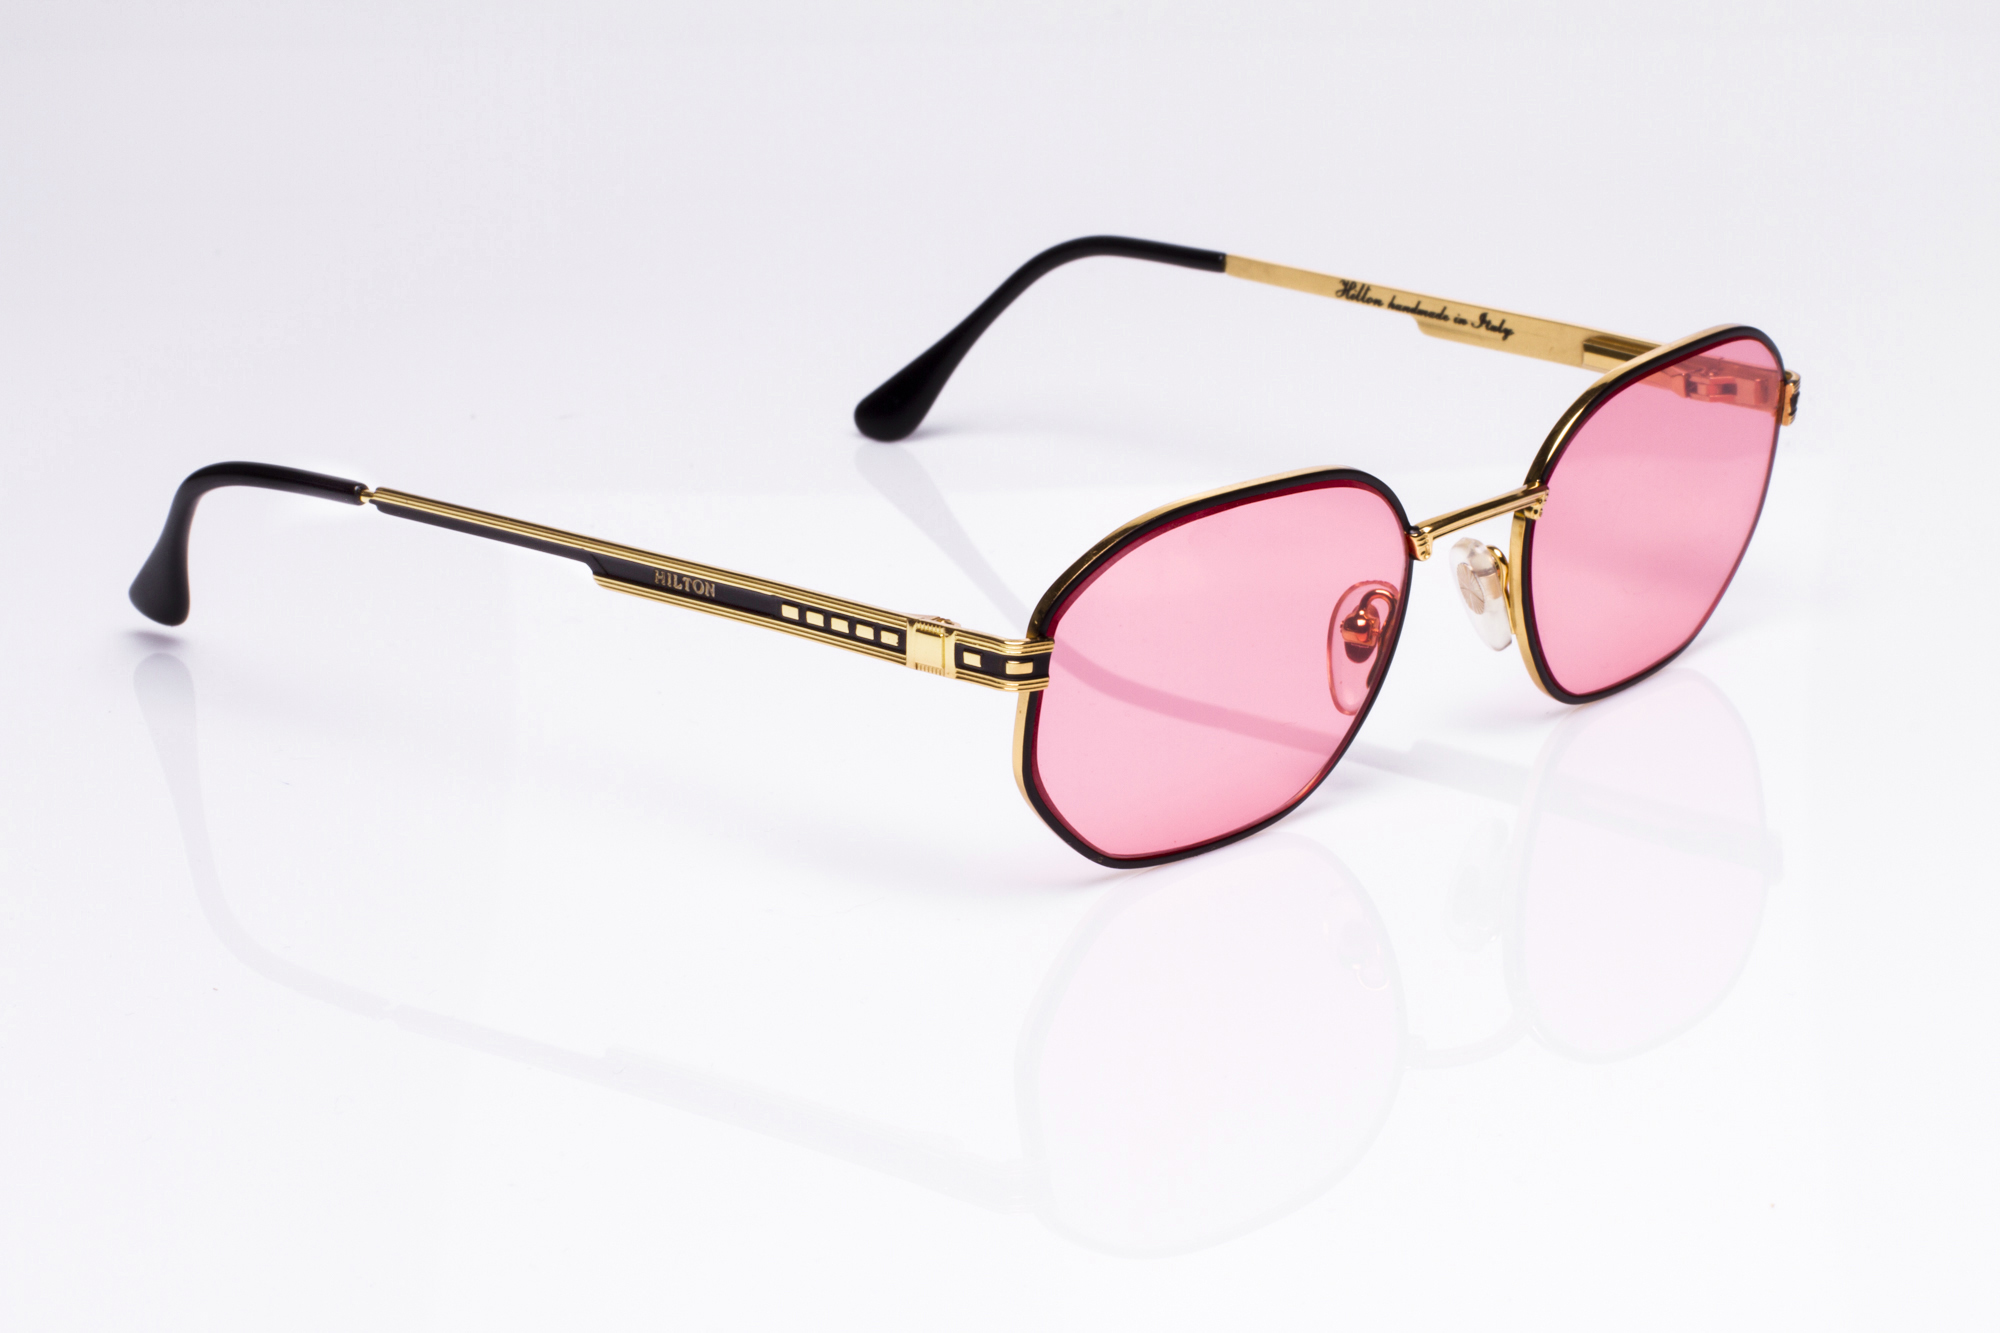 9539195fa71 Rich The Kid To Release Limited Edition Rose-Colored Sunglasses ...